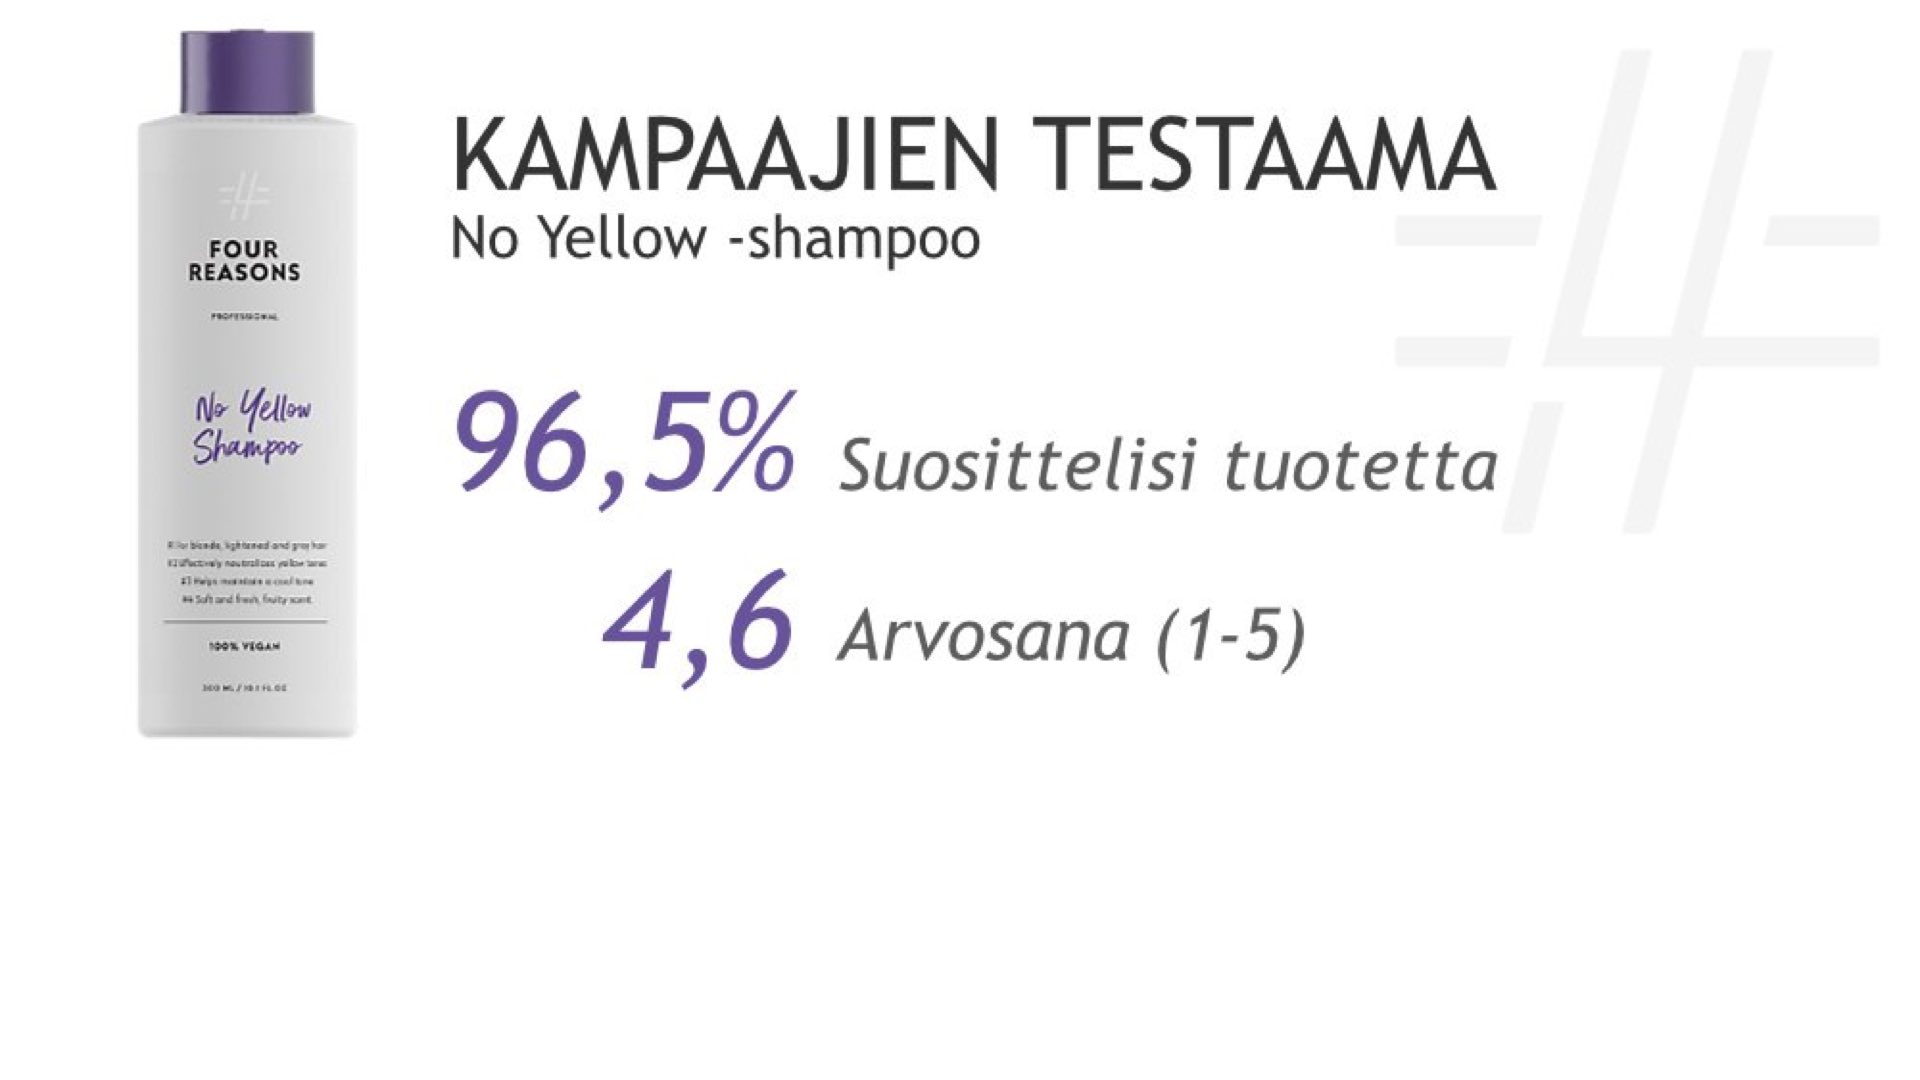 FOUR REASONS PRO NO YELLOW SHAMPOO KAMPAAJIEN TESTISSÄ